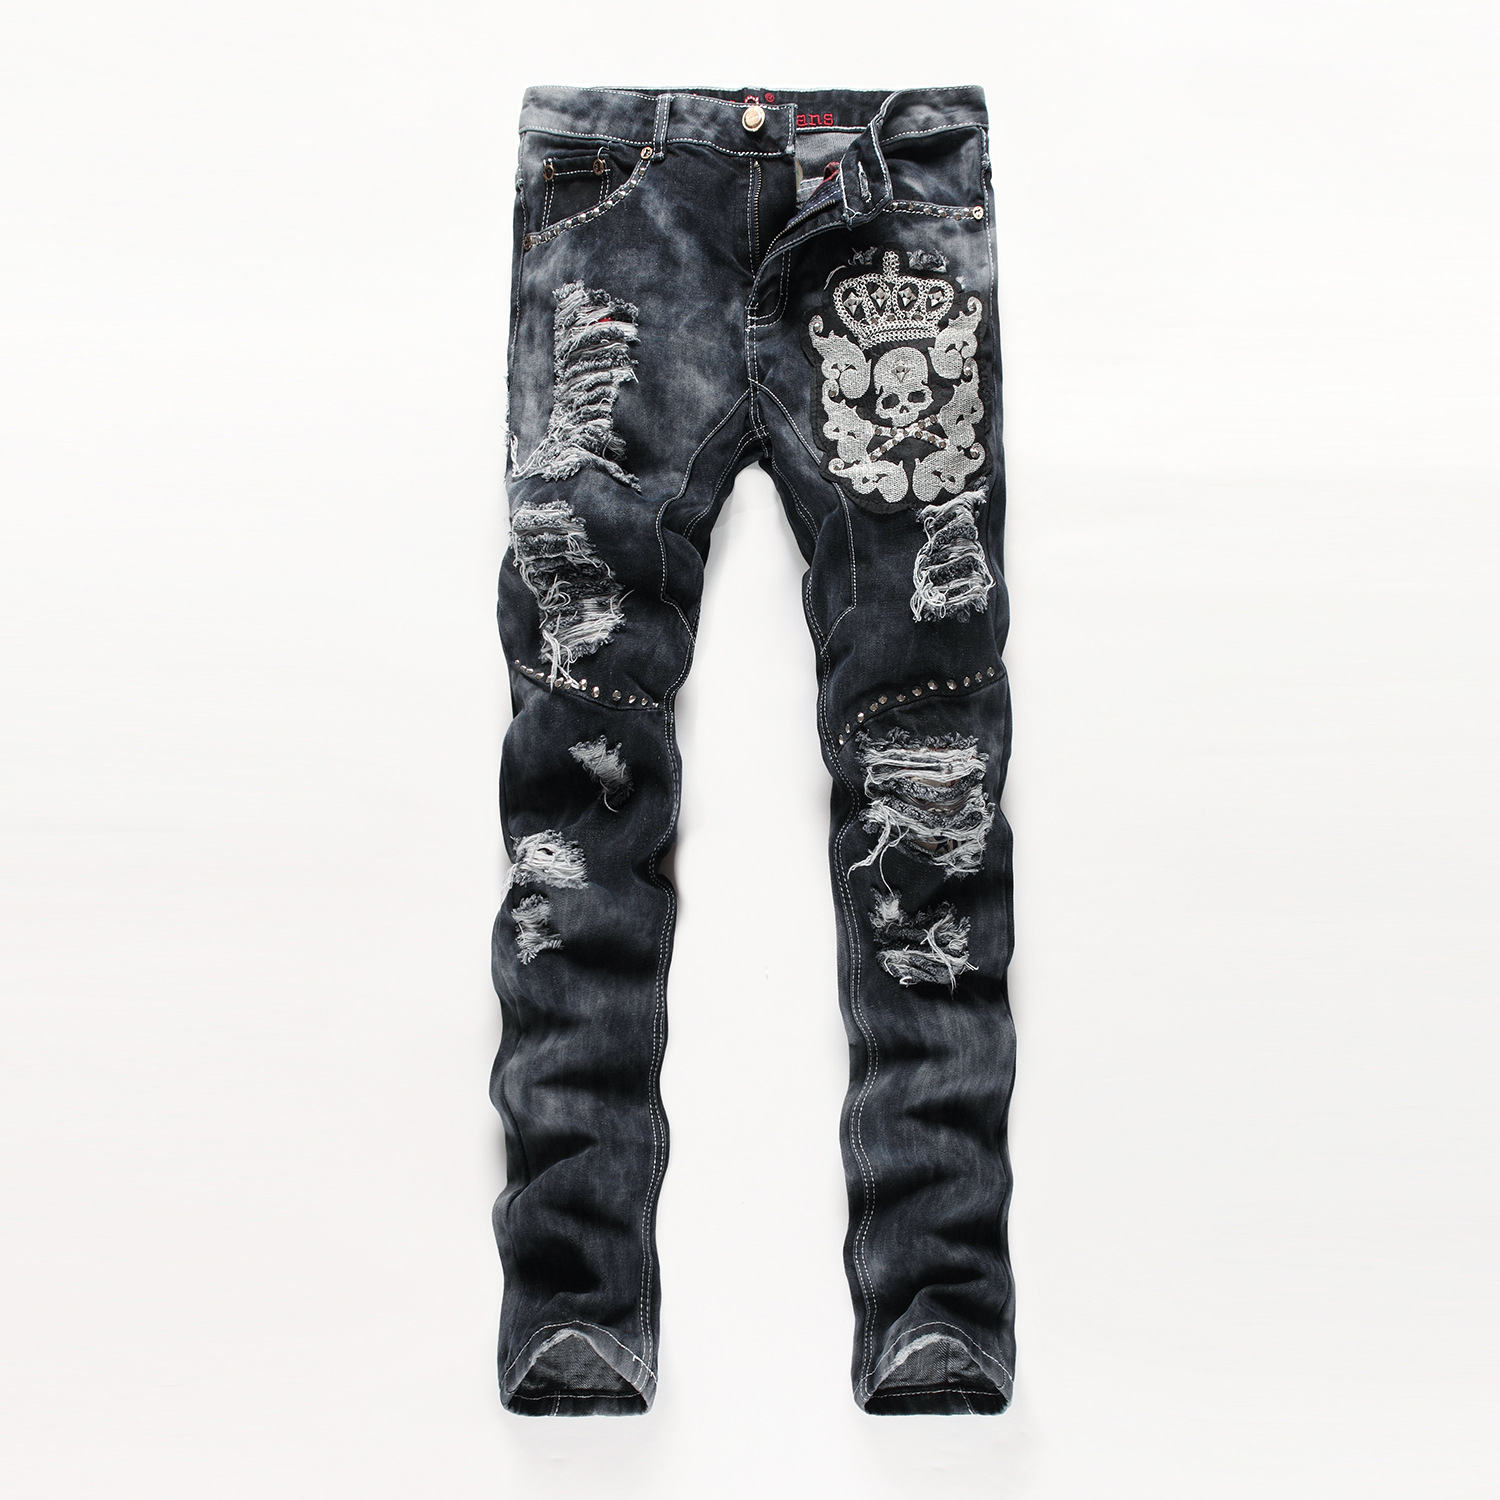 ФОТО 2016 New Fashion Men Hip Hop Ripped Jeans Regular Fit Straight Distressed Jean Trousers With Skull Embroidery Holes Stitching